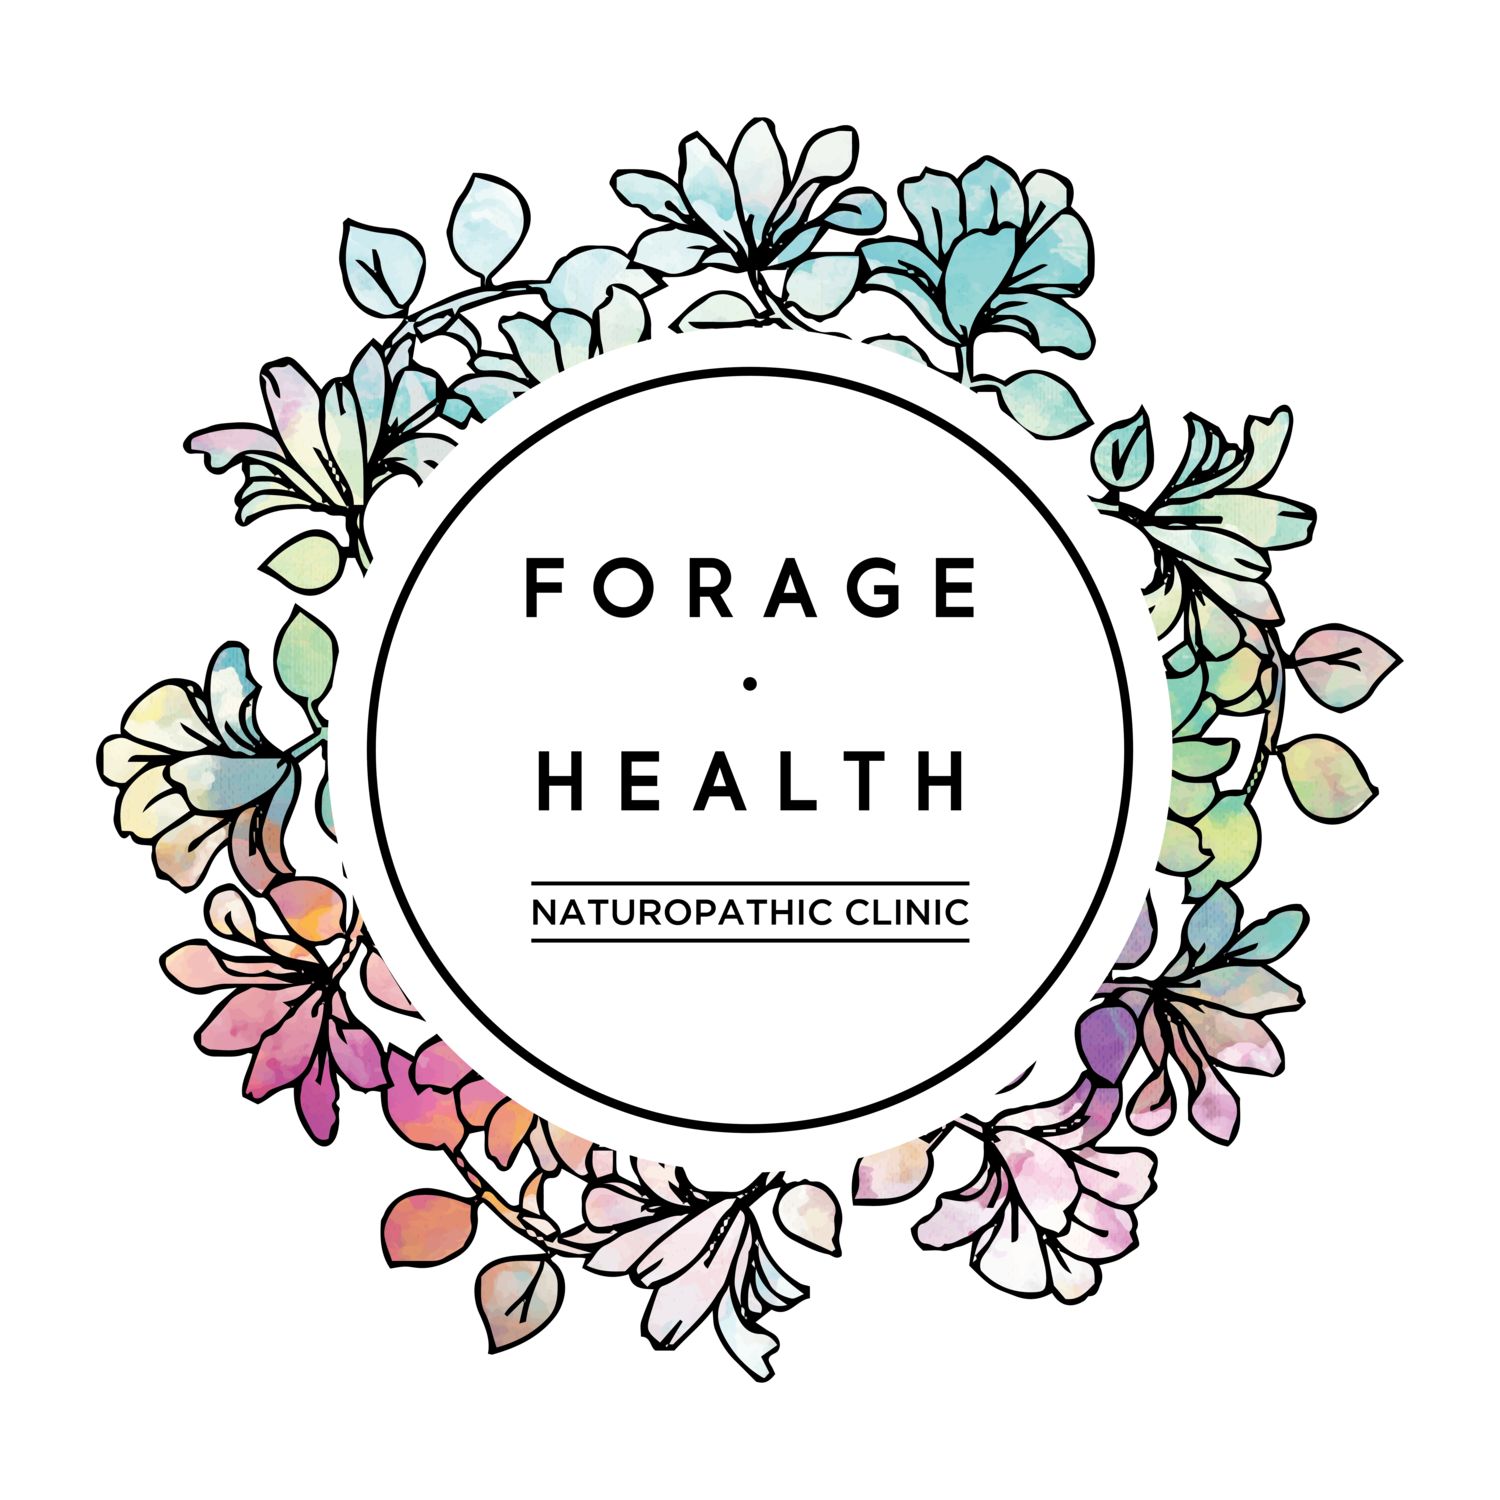 Forage Health